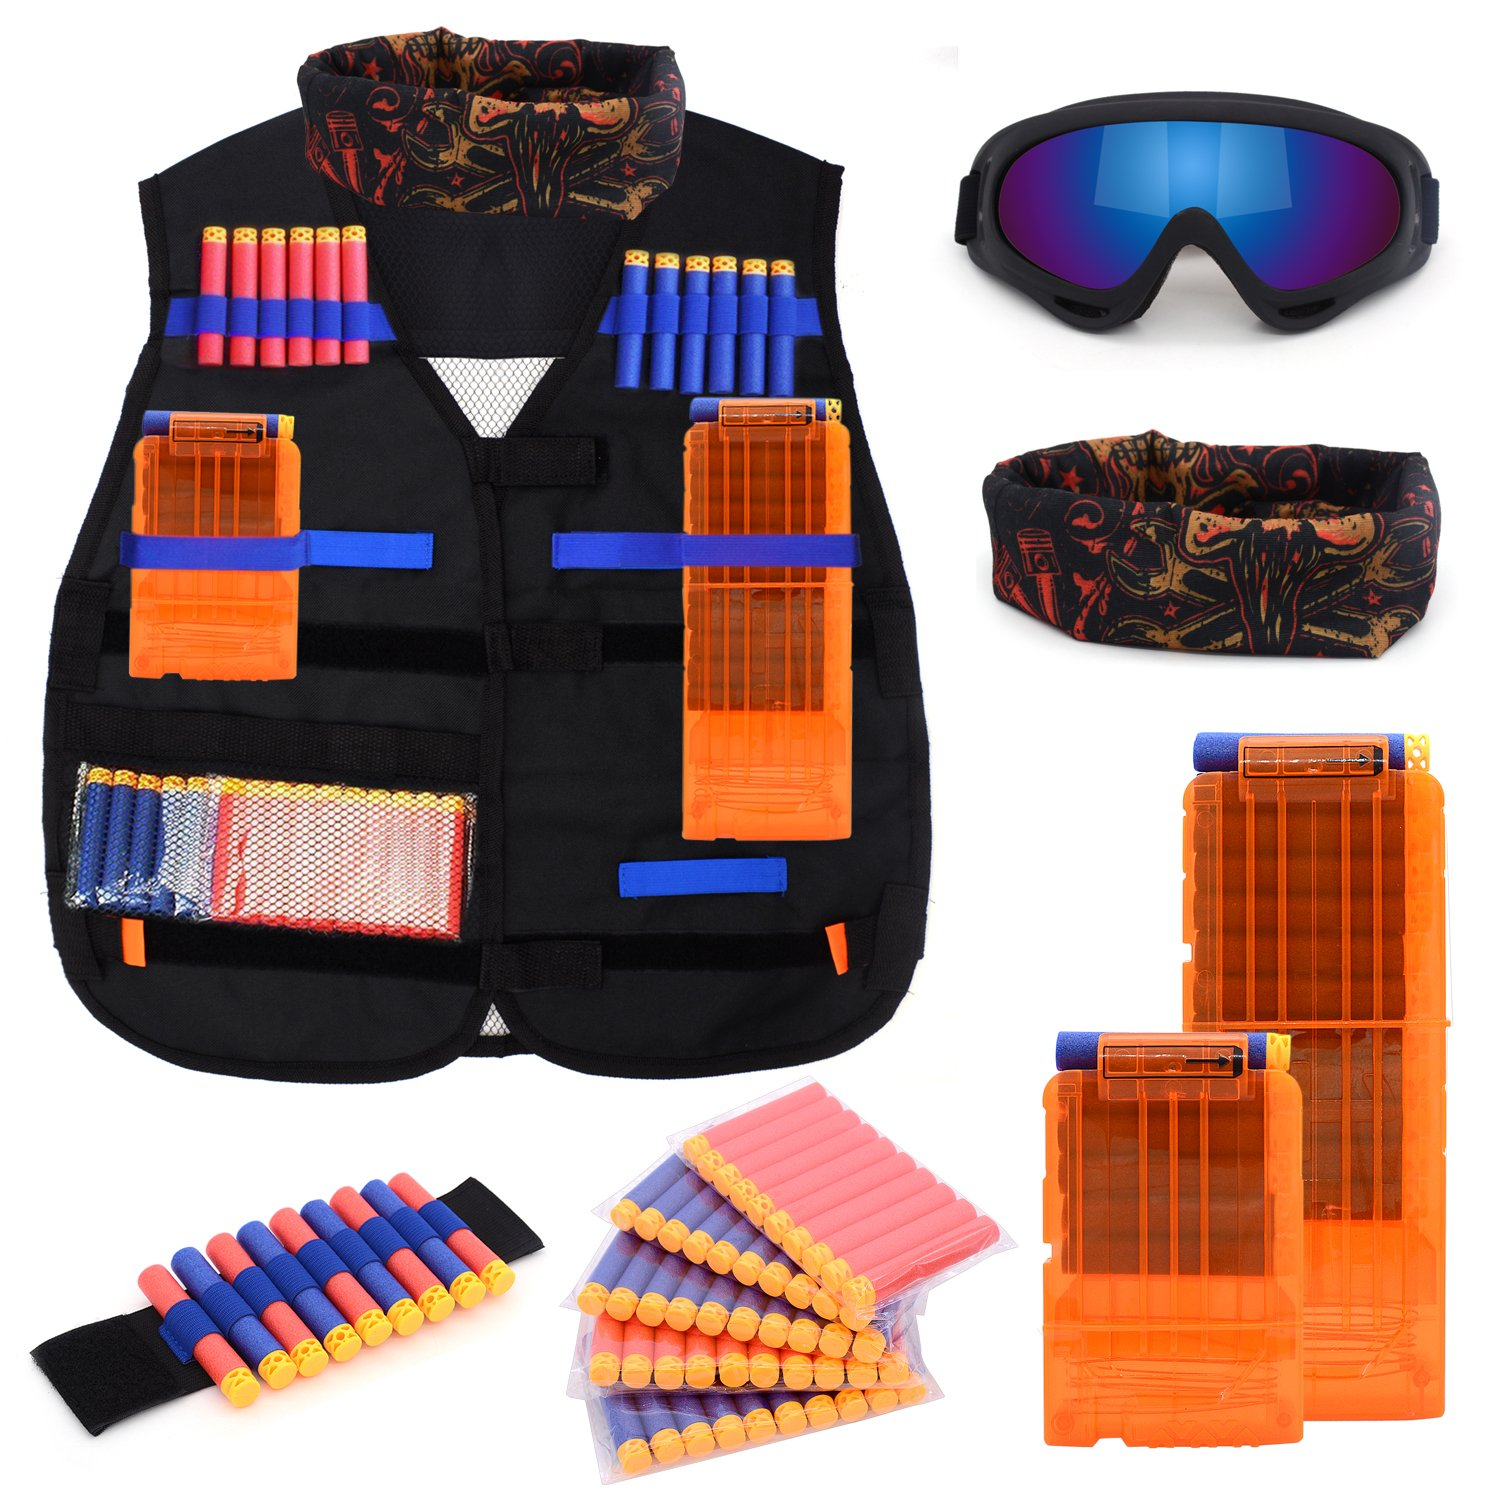 Forliver Kids Tactical Vest Kit, Kids Elite Tactical Vest Kit For Nerf N-strike Elite Series with 50 Refill Darts + 2 Reload Clips + Face Tube Mask + Protective Glasses by Forliver